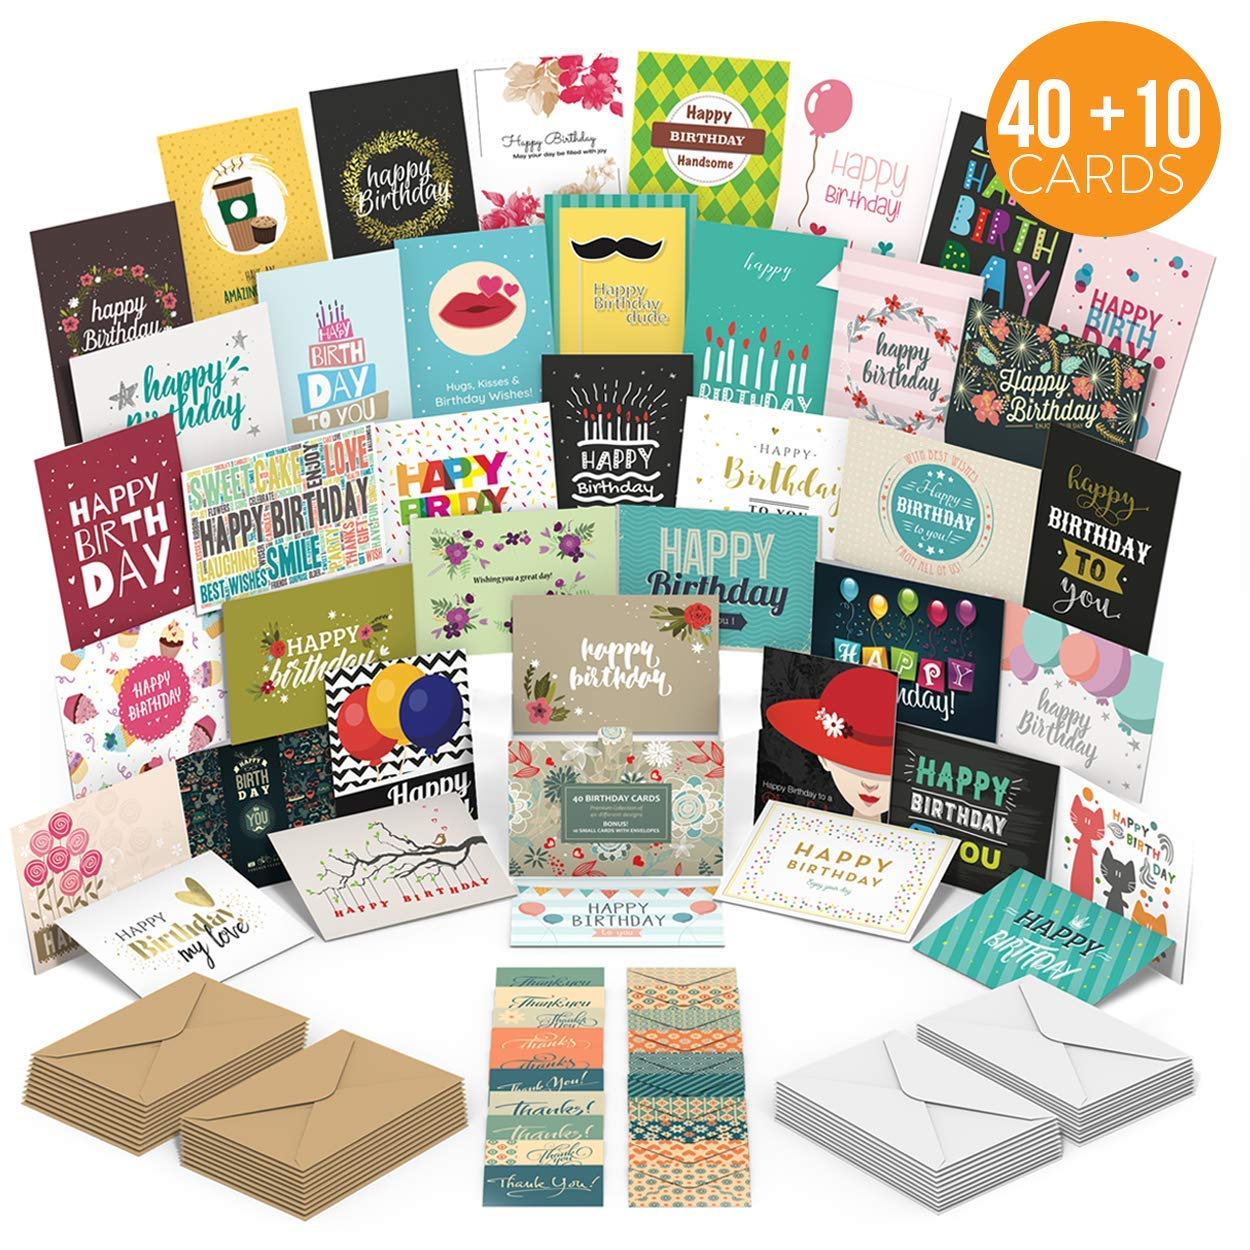 Birthday Cards Assortment with 40 Unique Designs - Blank Inside - Premium Quality Birthday Cards Bulk Box Set With Envelopes - A Happy Birthday Card For Everyone - Perfect For Employees by MyPresentForYou